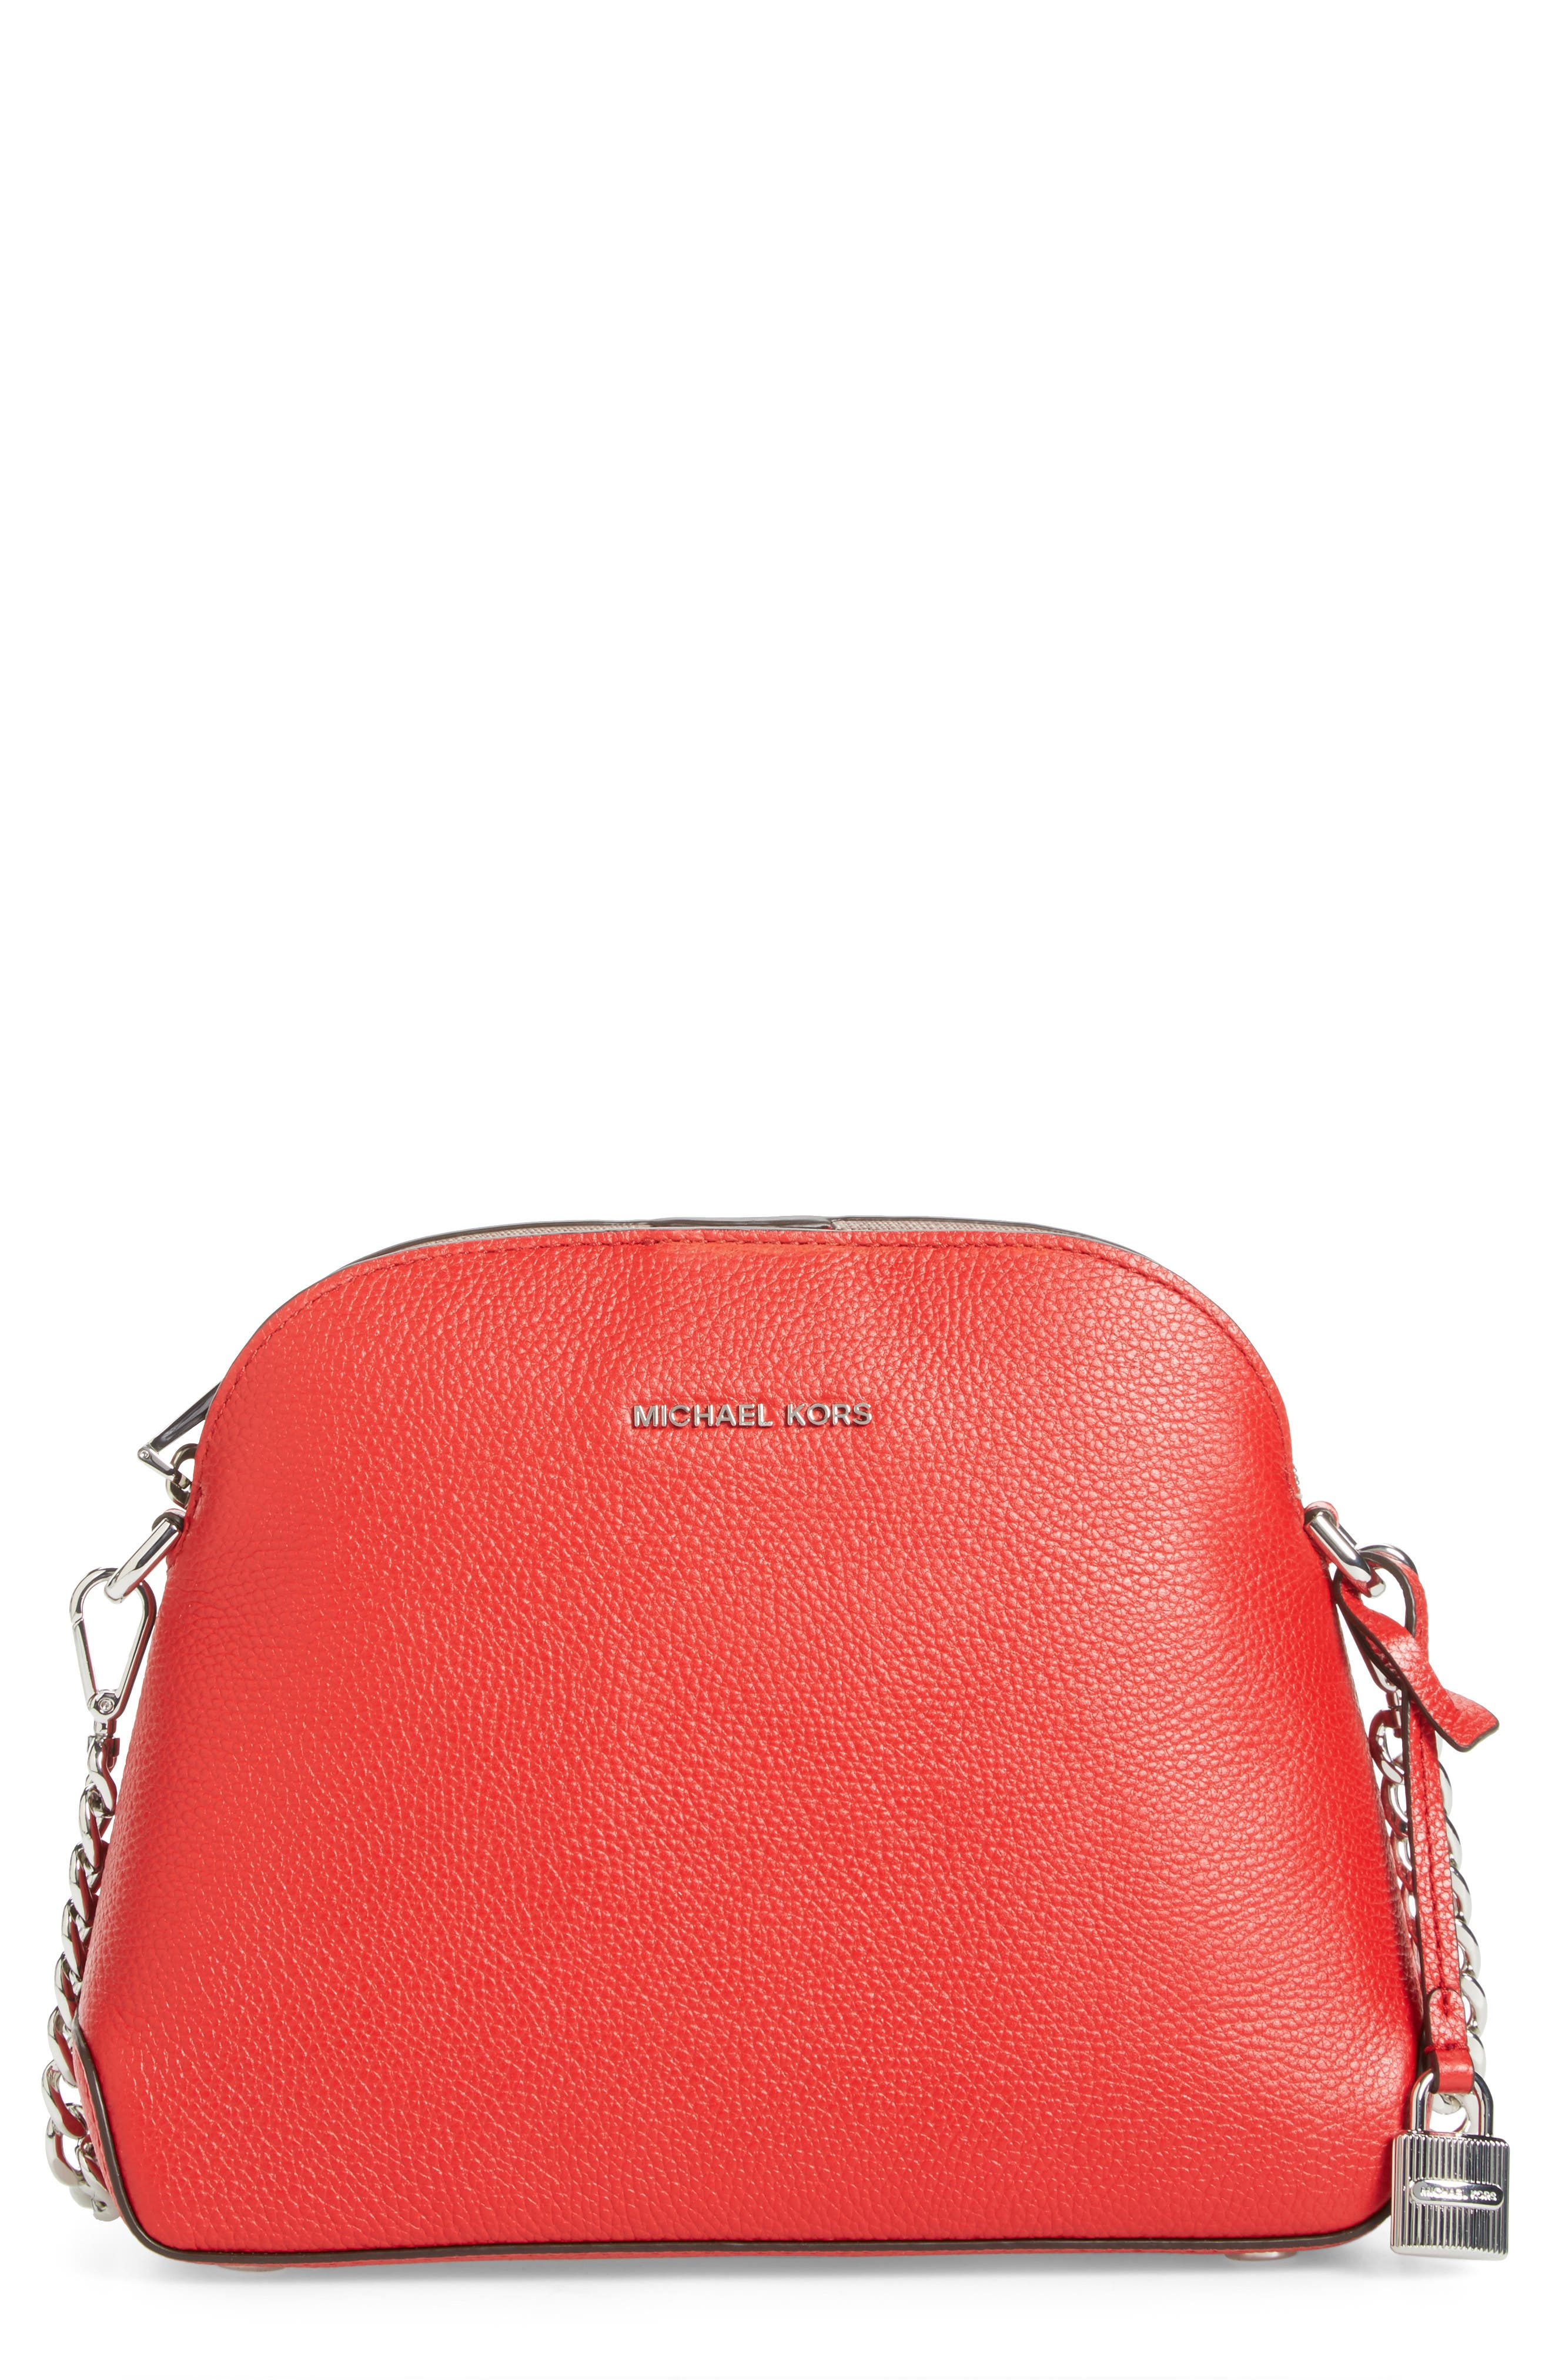 MICHAEL MICHAEL KORS MICHAEL by Michael Kors Medium Mercer Leather Dome Satchel